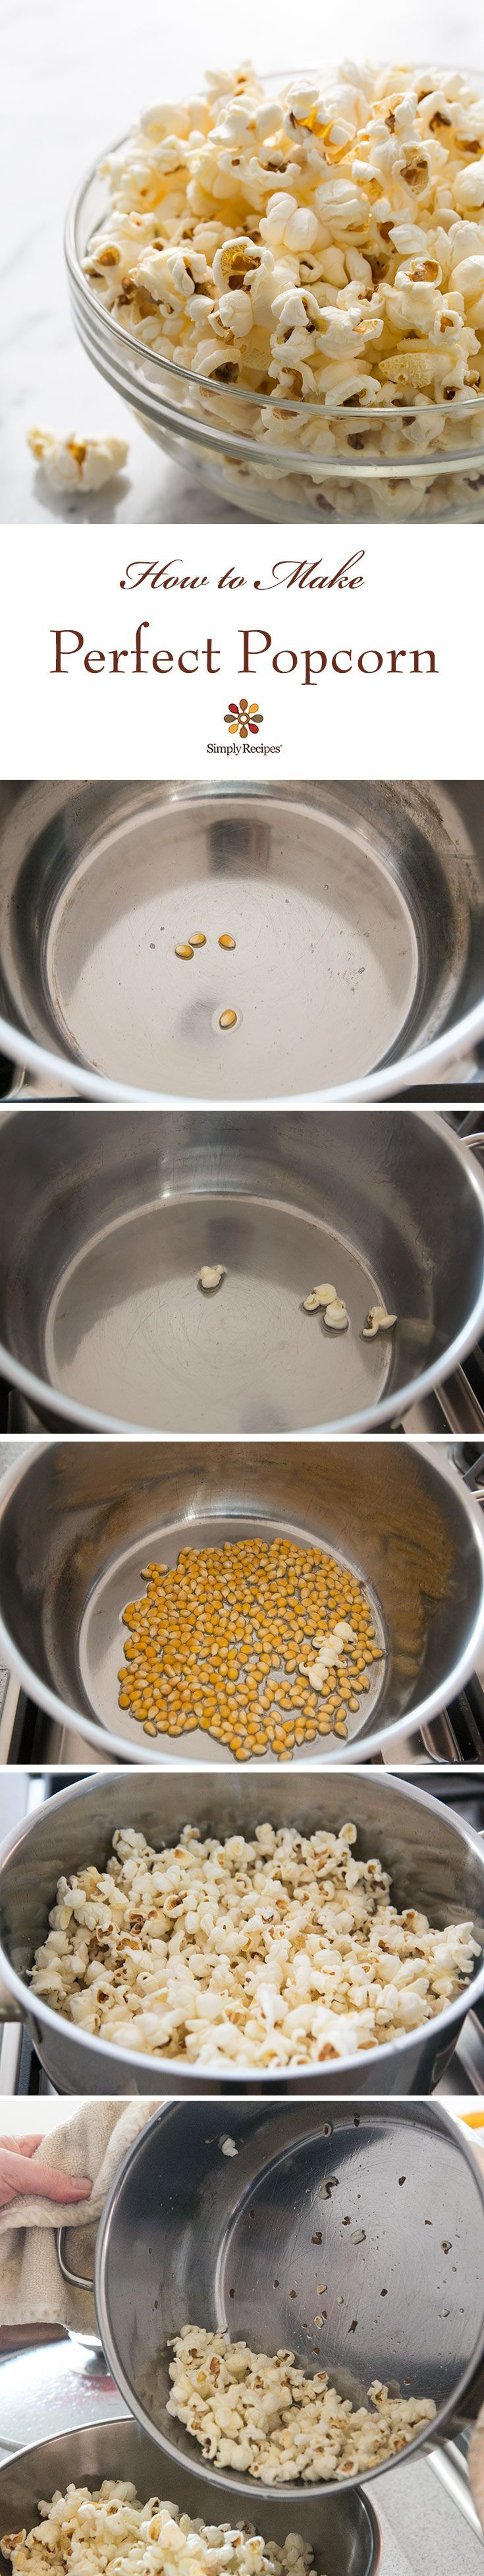 How to make PERFECT popcorn. No burnt kernels! Easy stove-top popcorn recipe on SimplyRecipes.com